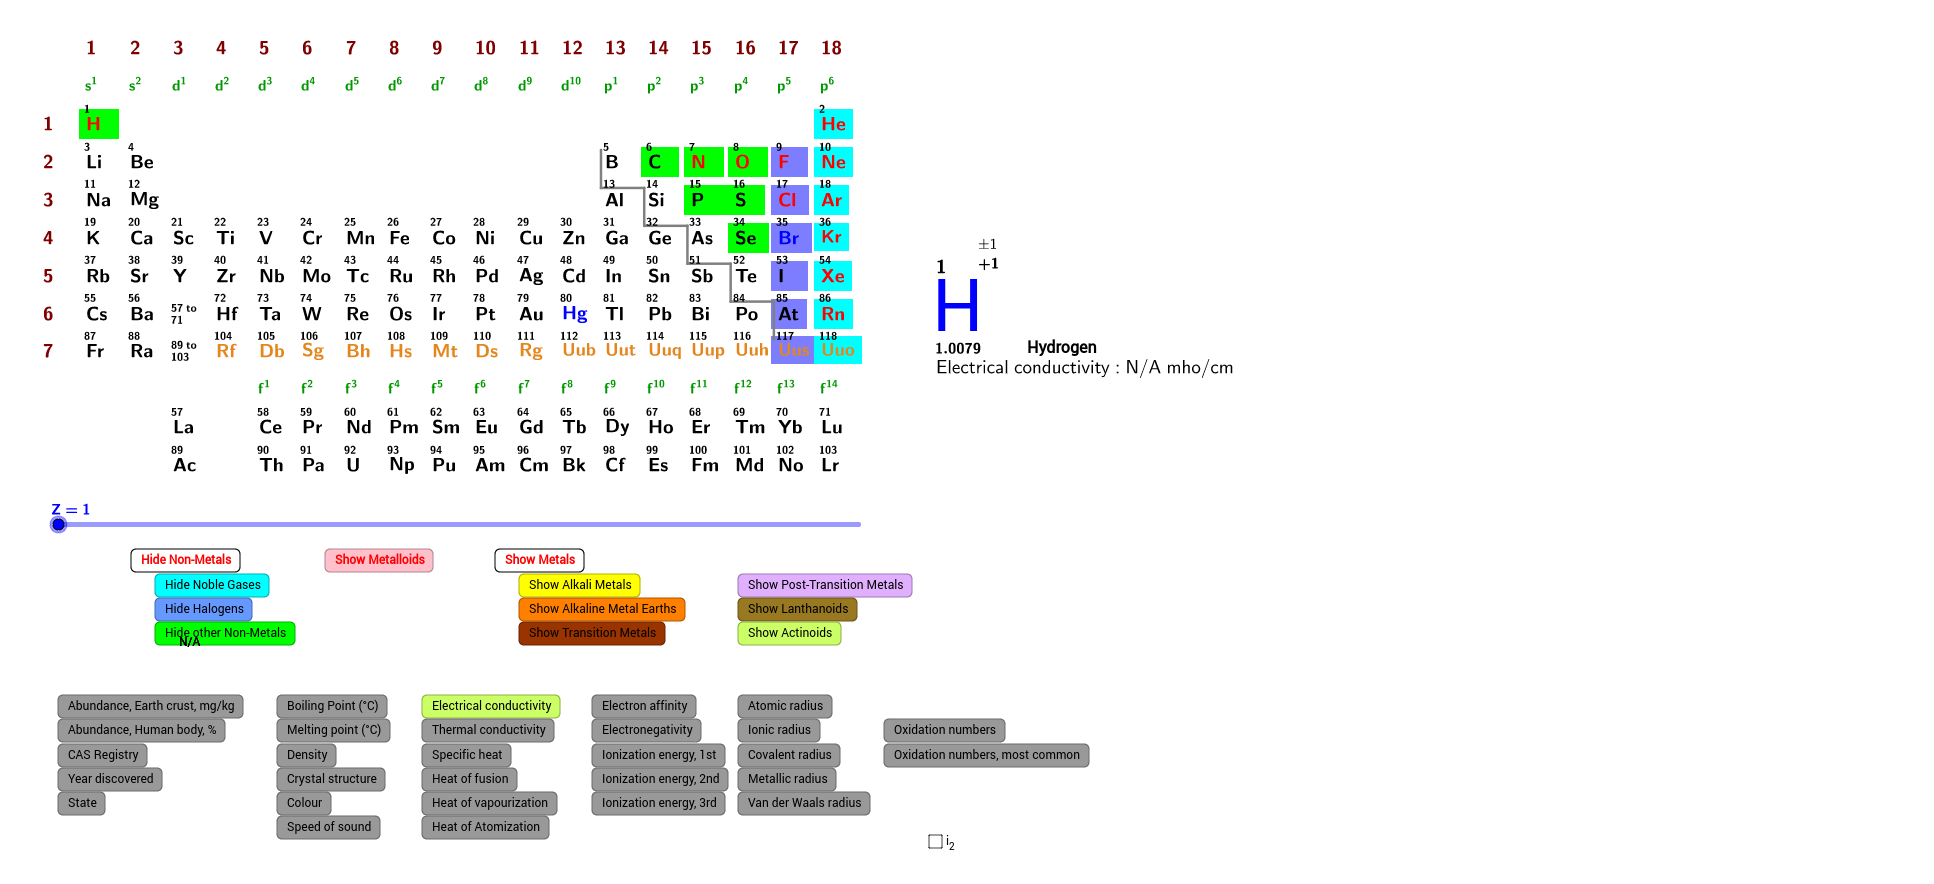 Periodic table of the elements with selectable properties